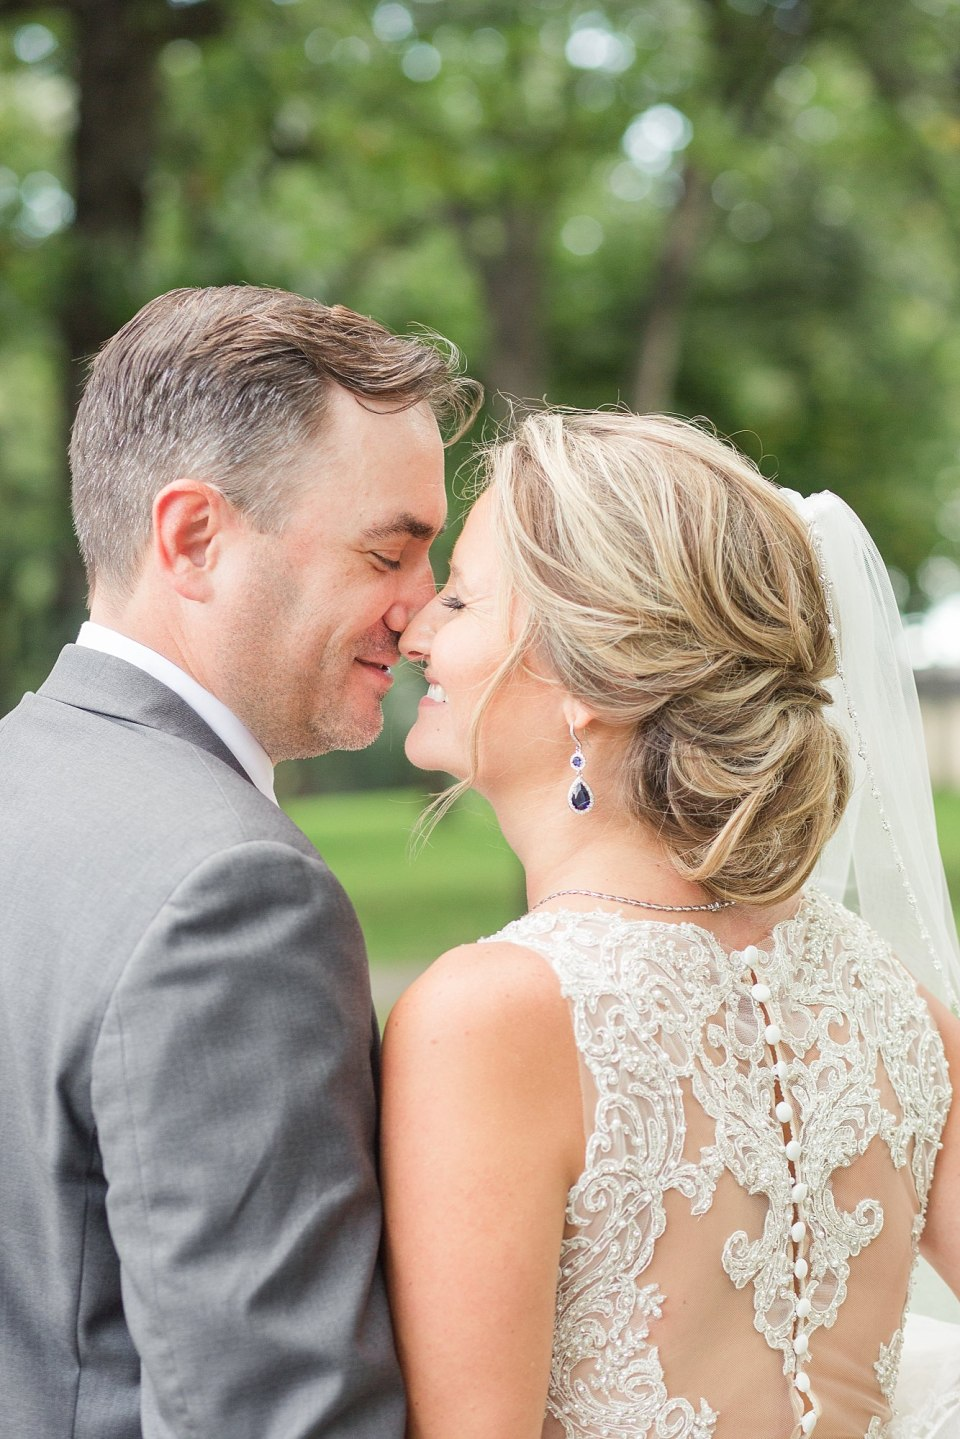 A bride shows off the detailed back of her dress while kissing her groom